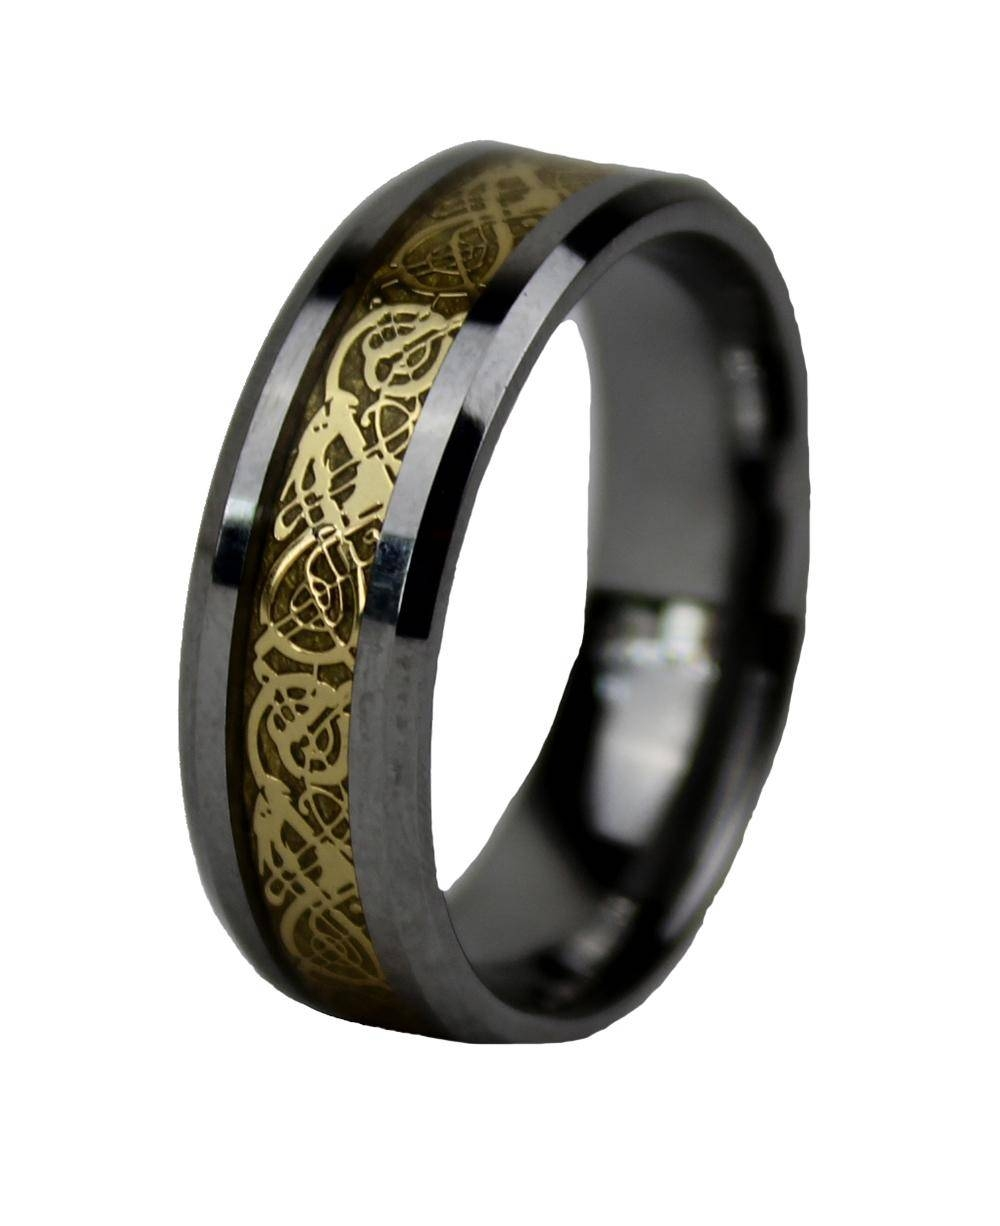 2017 Mens Celtic Wedding Ring 8Mm Tungsten Carbide Wedding Bands With Regard To Horn Inlay Titanium Wedding Bands (Gallery 3 of 15)